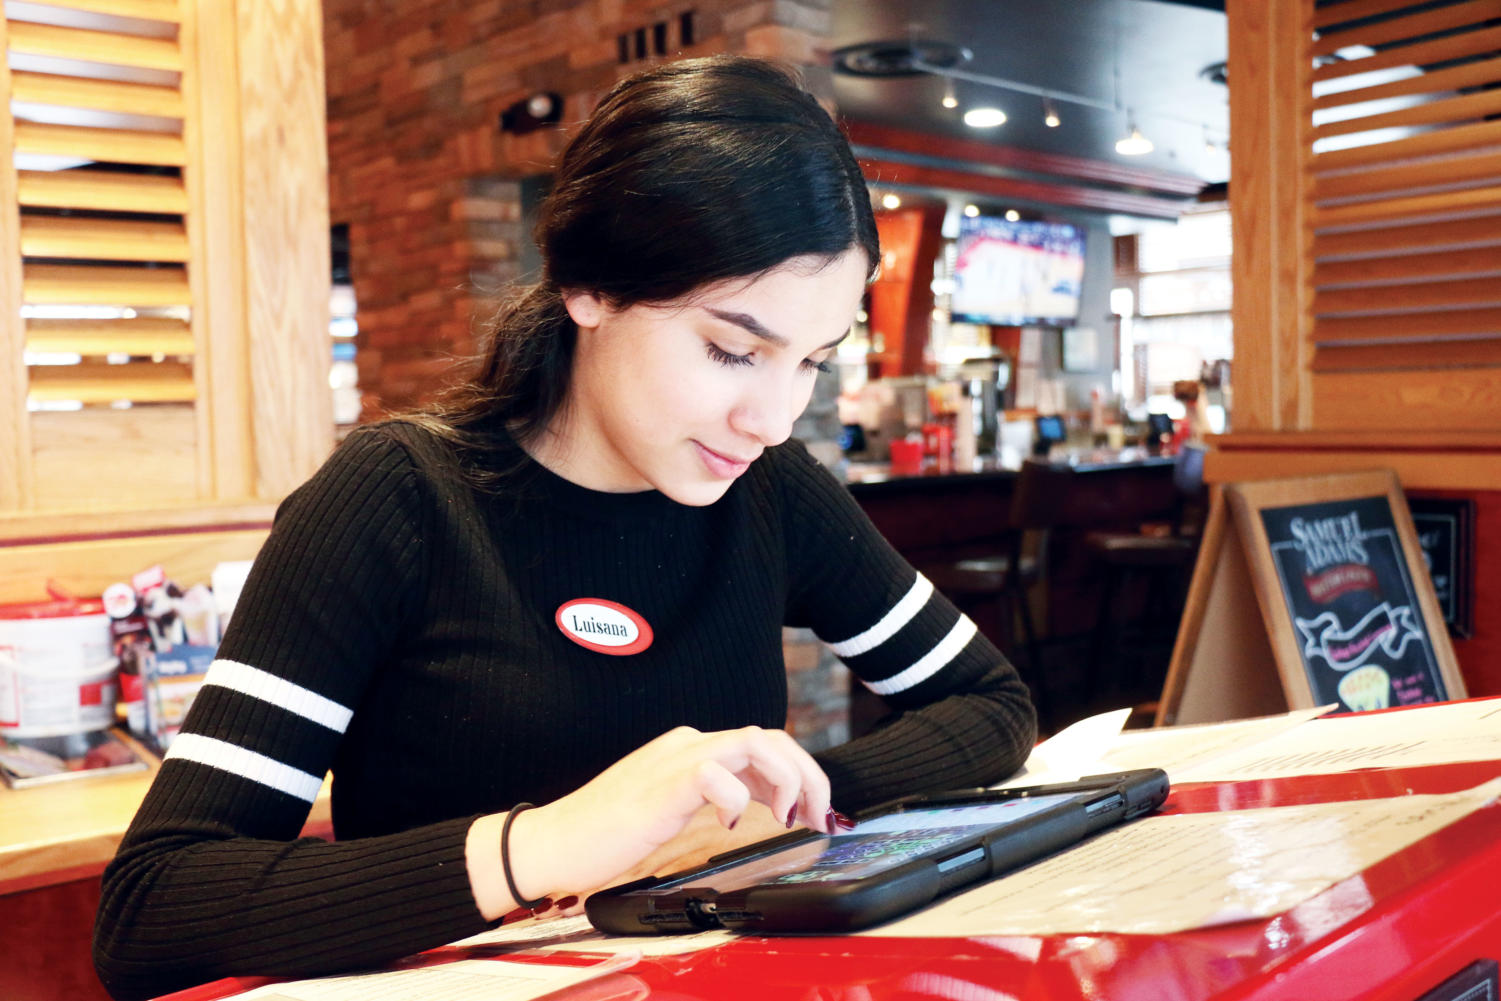 MAKING MONEY: Senior Luisana Rodriguez checks how many seats are available in Red Robin. Rodriguez has worked at Red Robin for a little less than a year. She said that her family sends money over to their relatives in Venezuela to help make their lives easier.